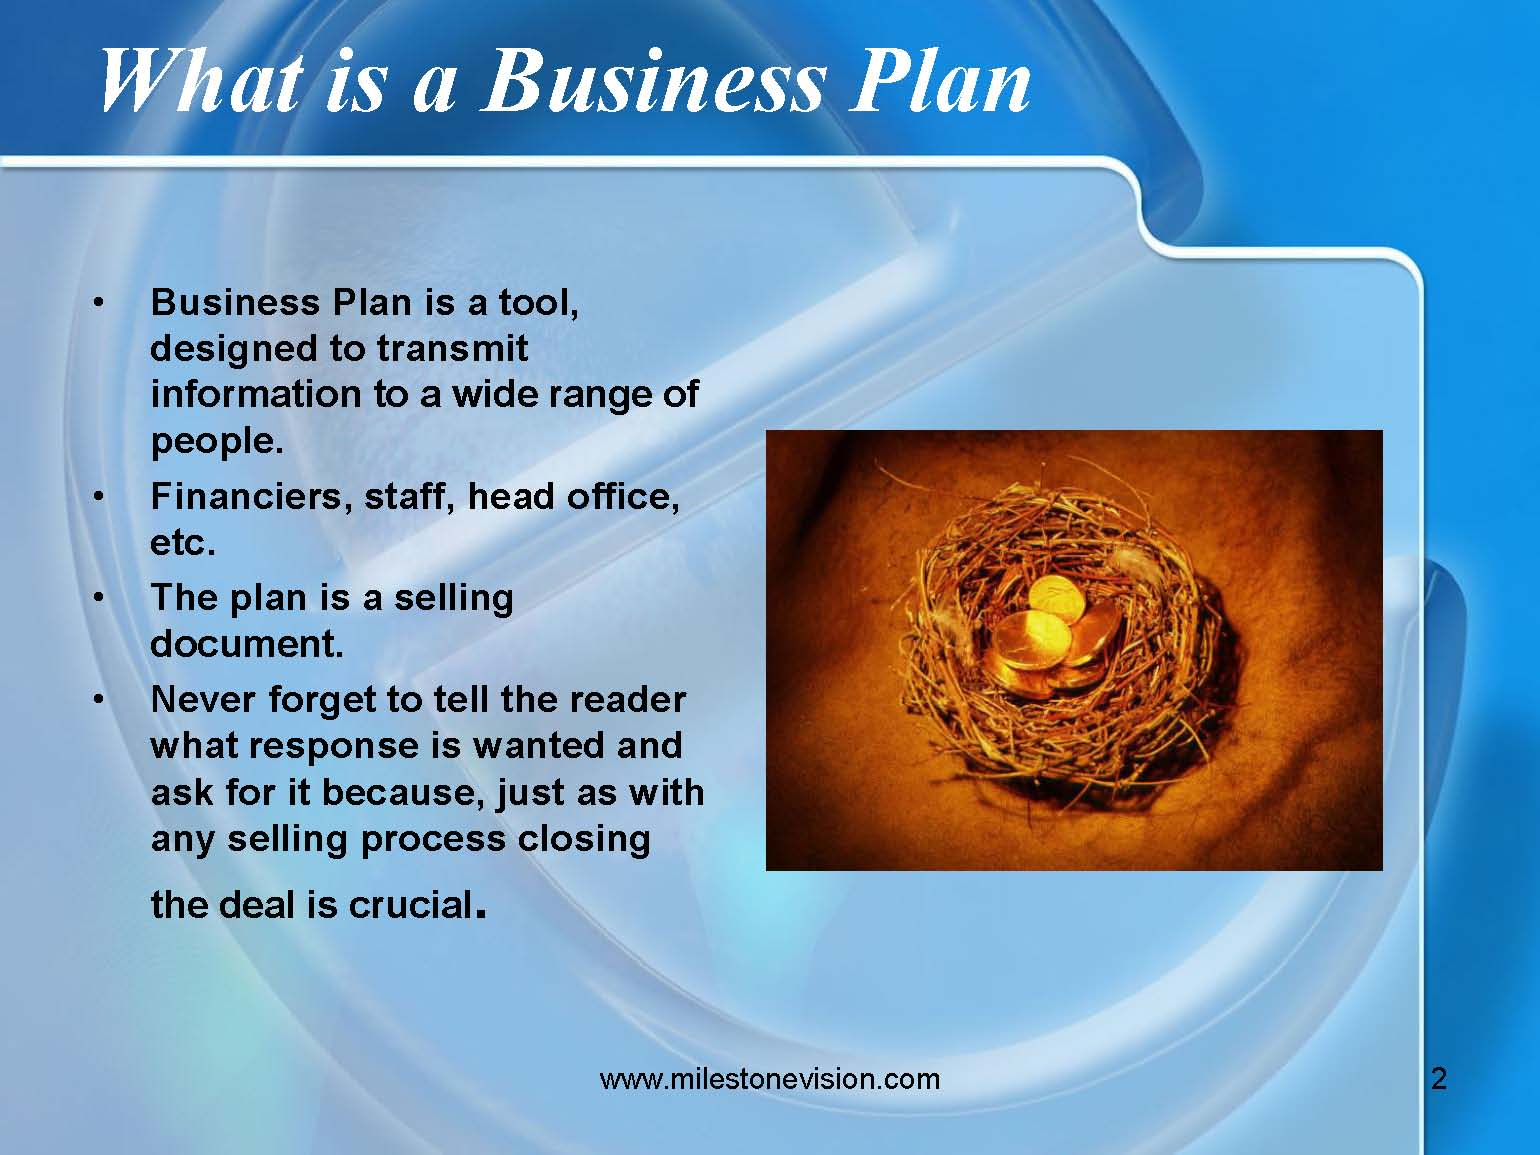 How to plan a business idea